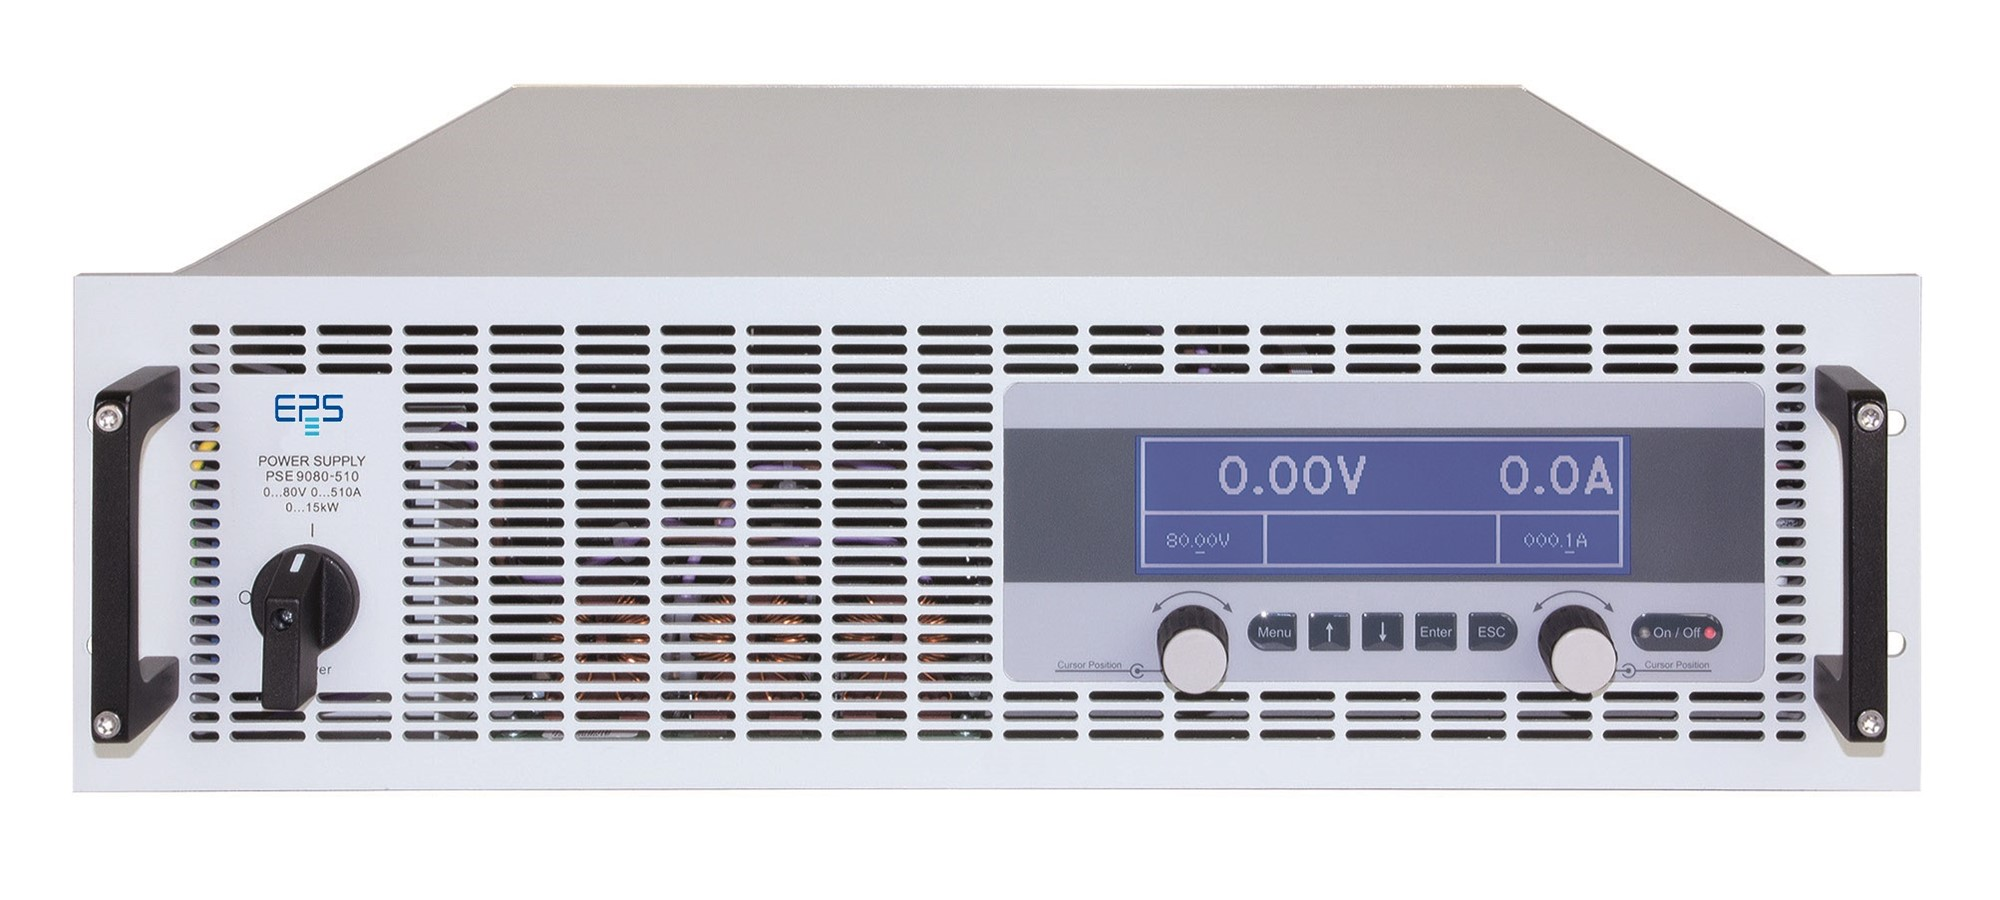 E/PSE 9000-3U Laboratory Power Supply 3.3-150 kW